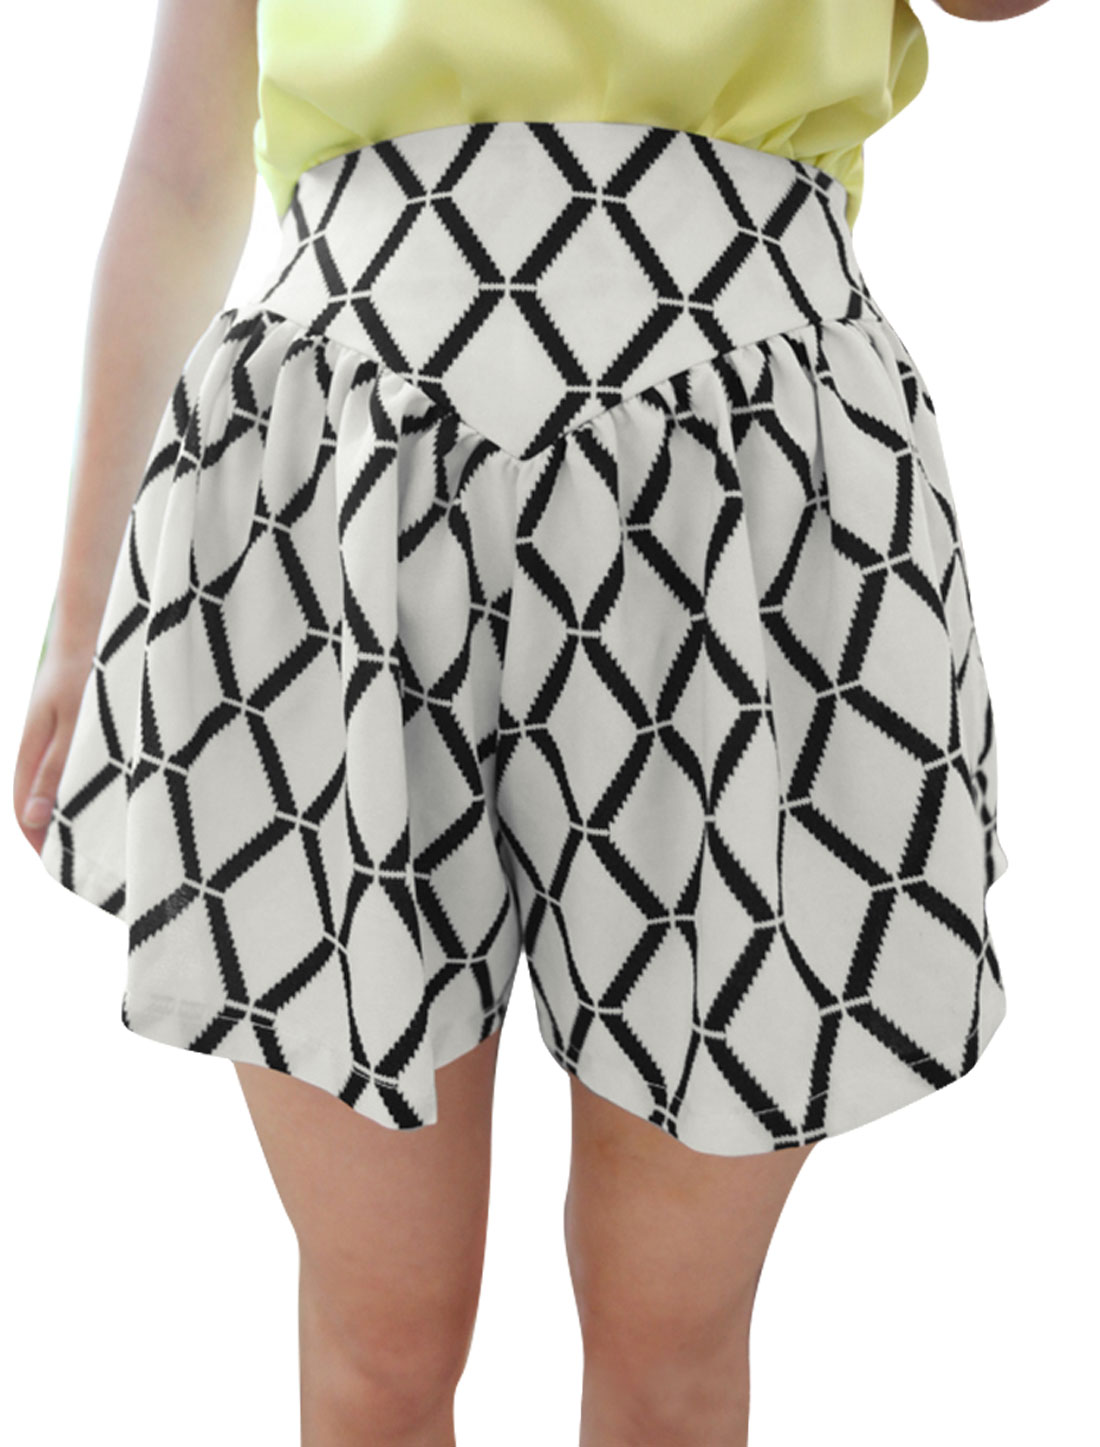 Ladies Two Tone Zip Fly Argyle Pattern Chiffon Summer Shorts S White Black